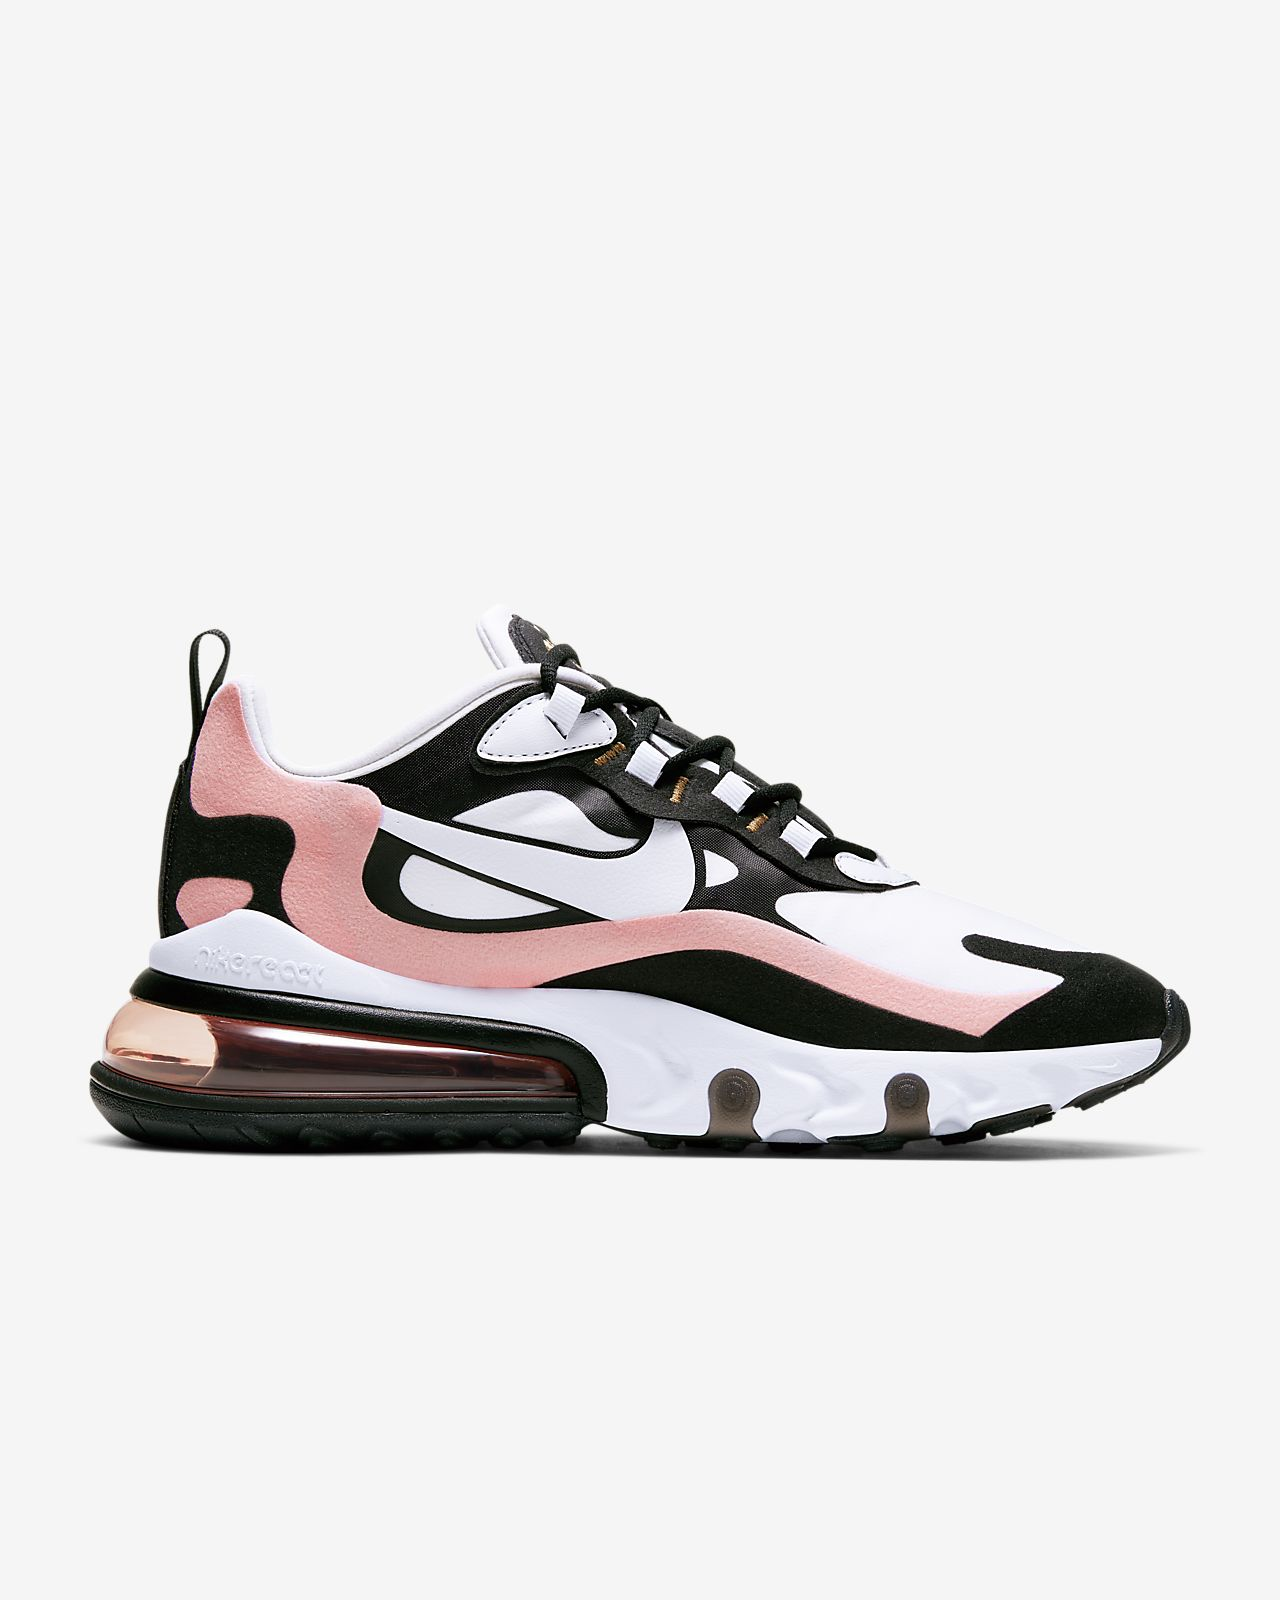 air max 270 react donna rosa e nere